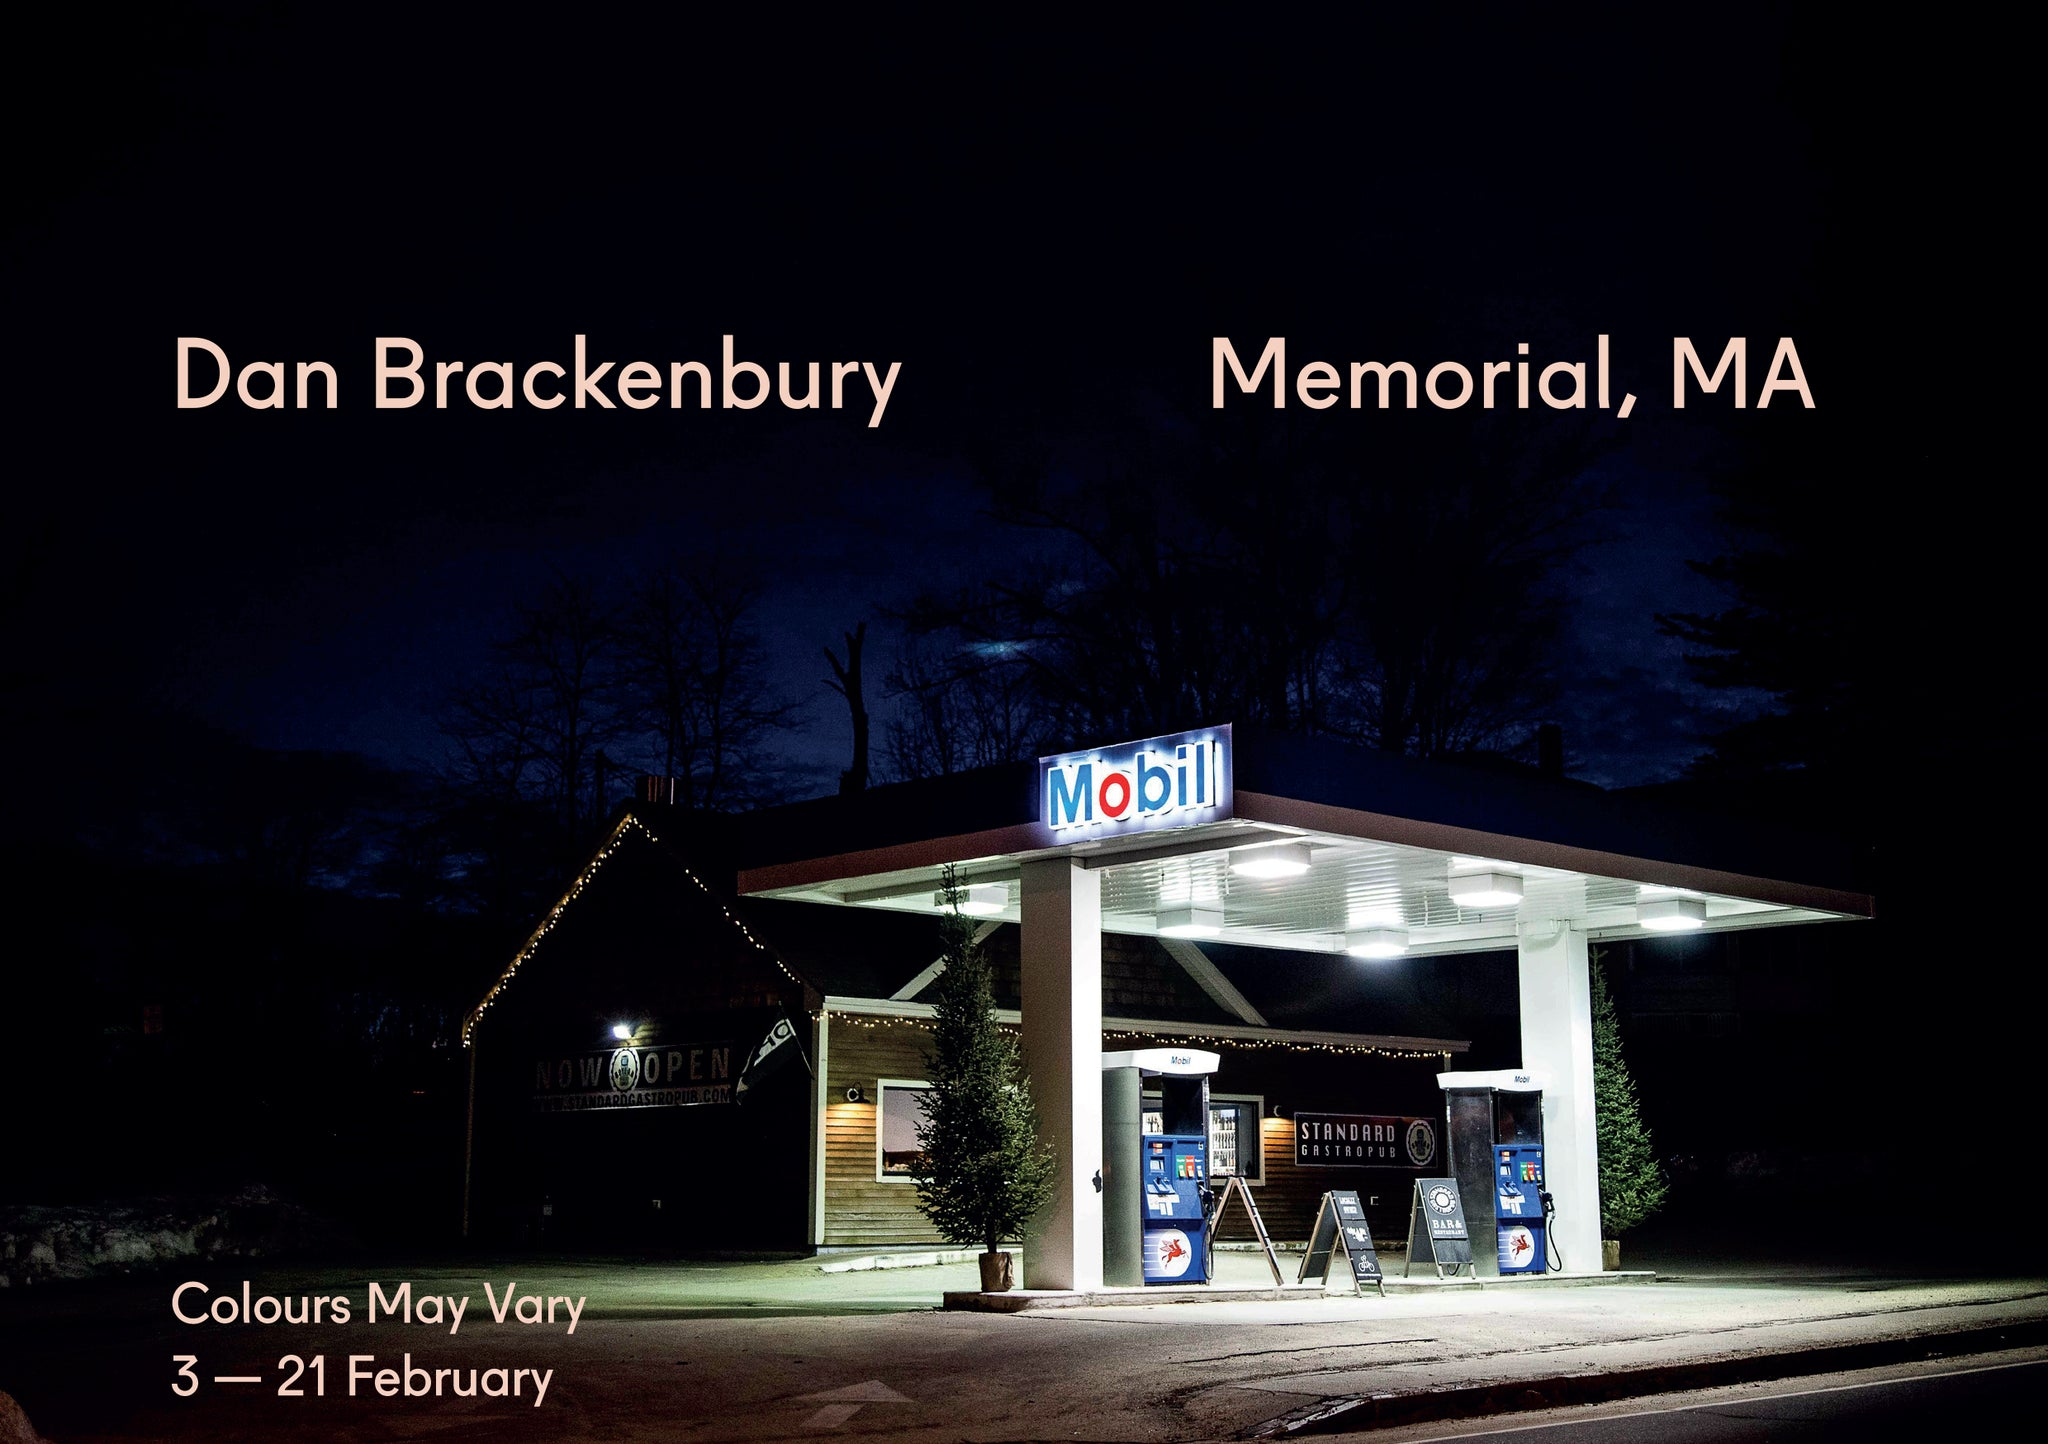 Dan Brackenbury - Memorial, MA